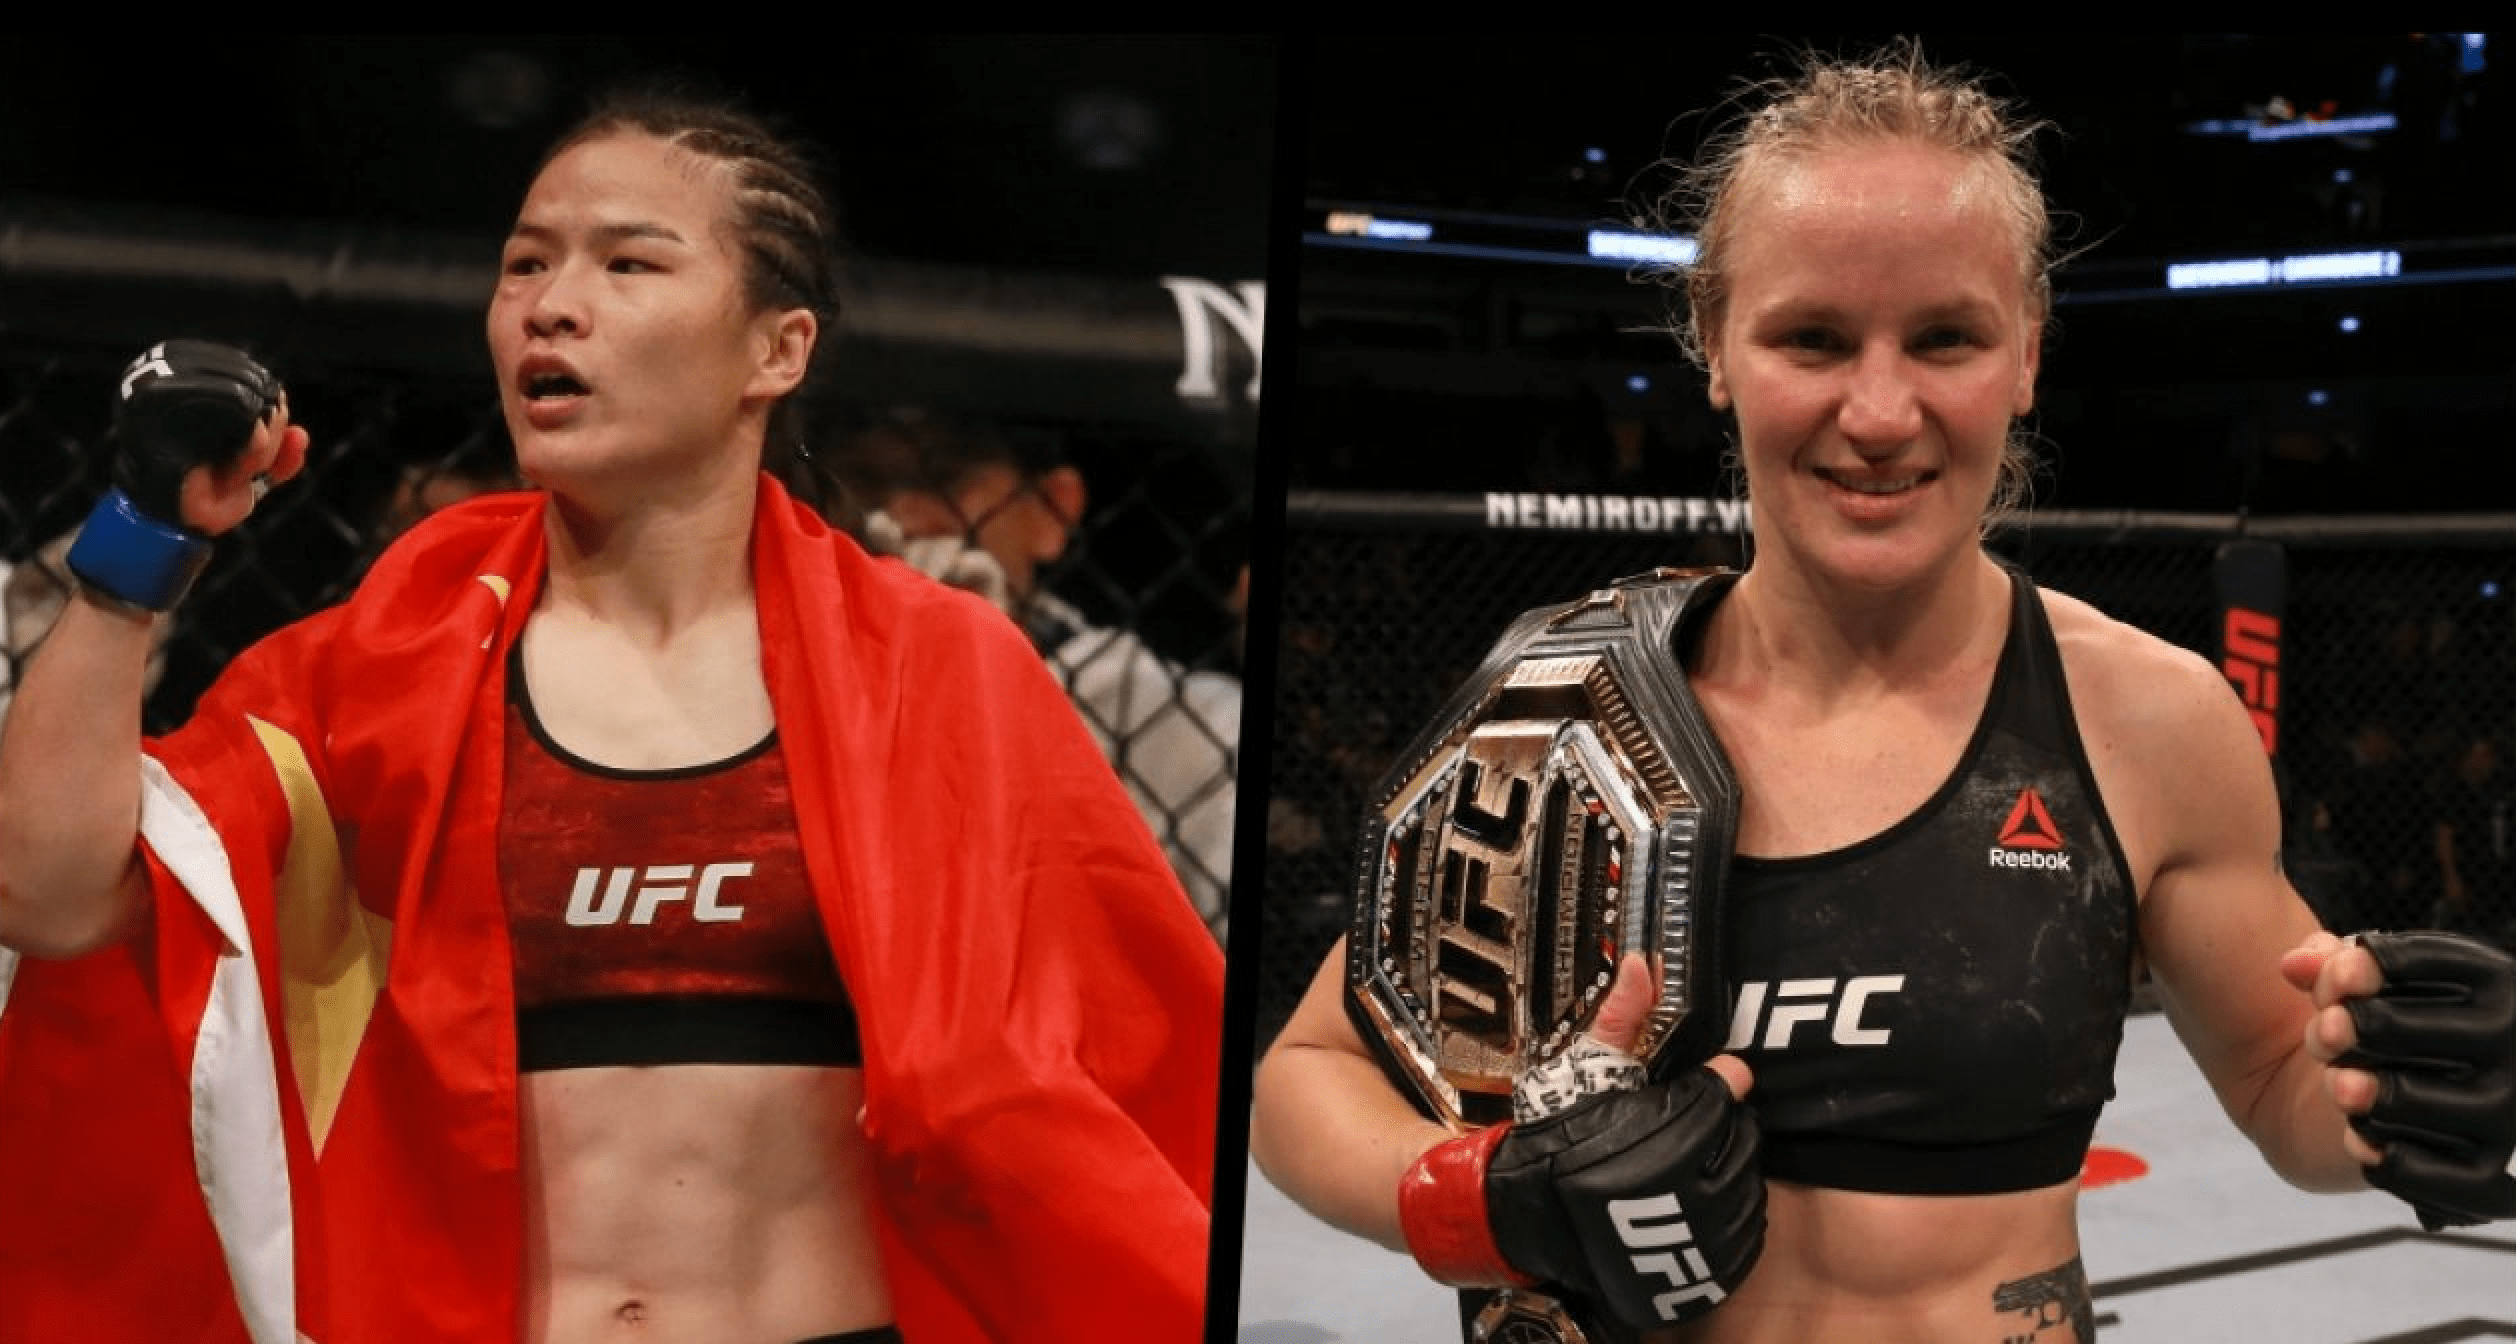 Shevchenko Happy To Face Zhang Once She's Cleared Out Her Division